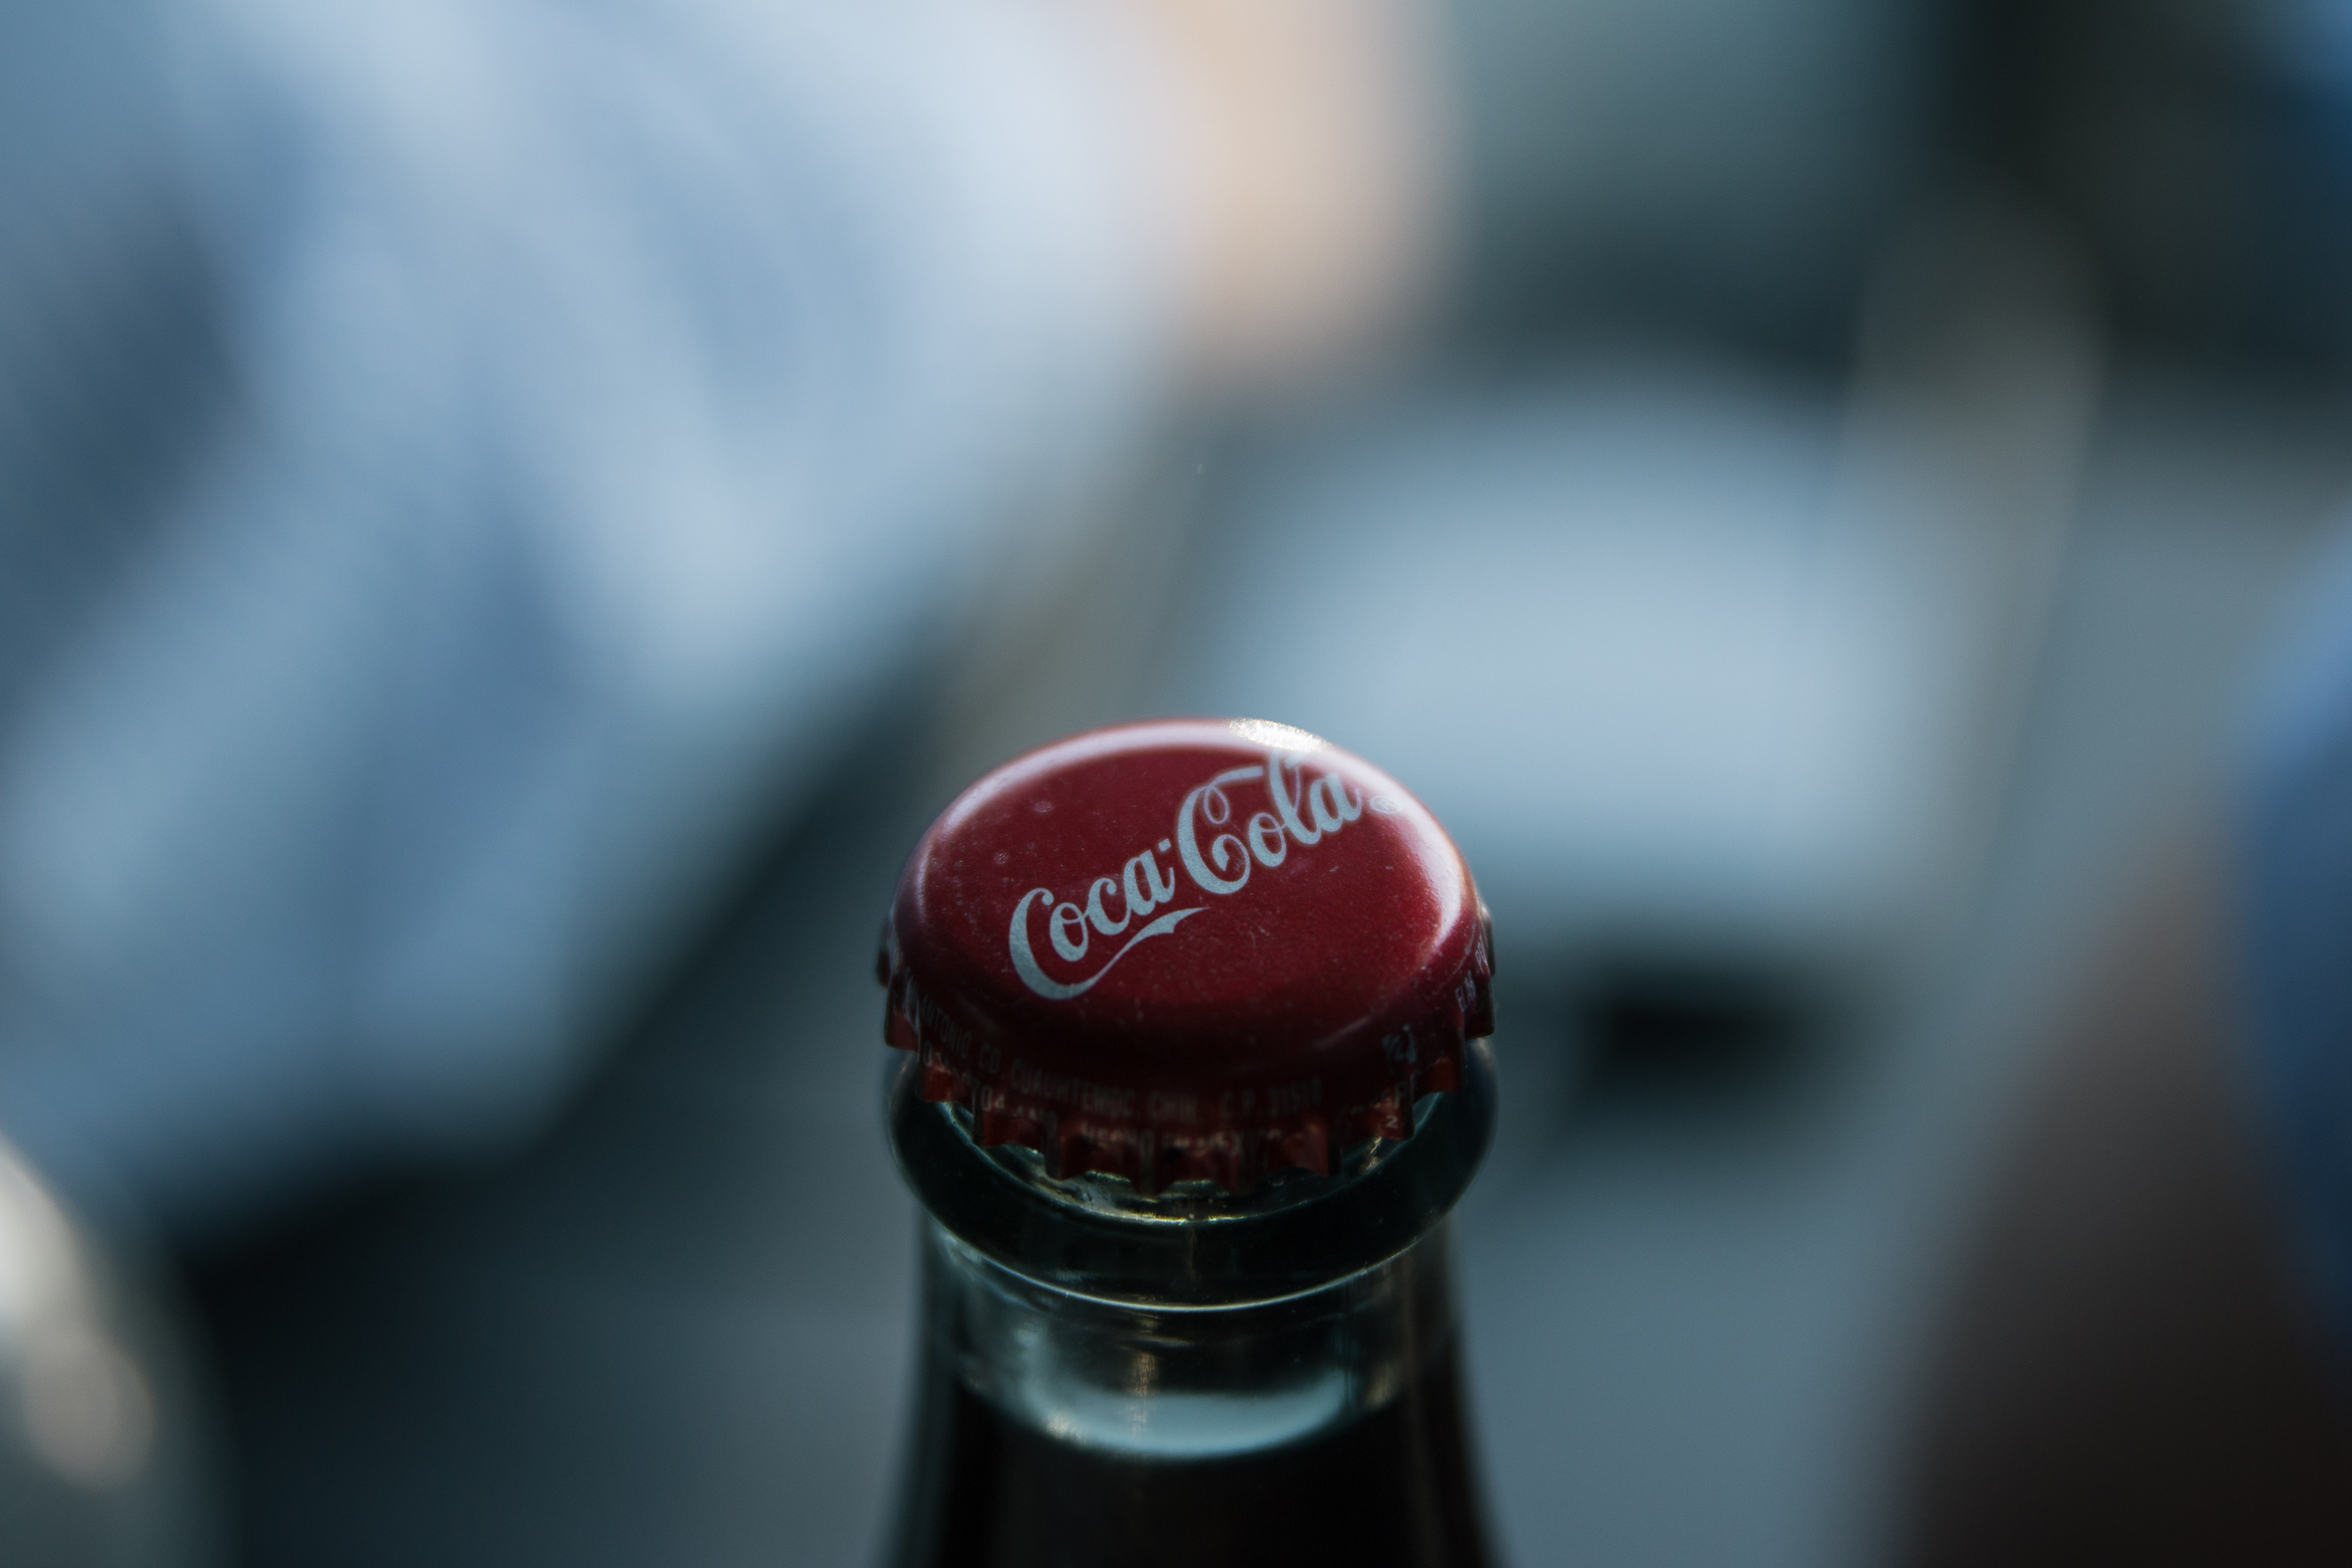 The bottle cap of a bottle of Coca-Cola in Raleigh